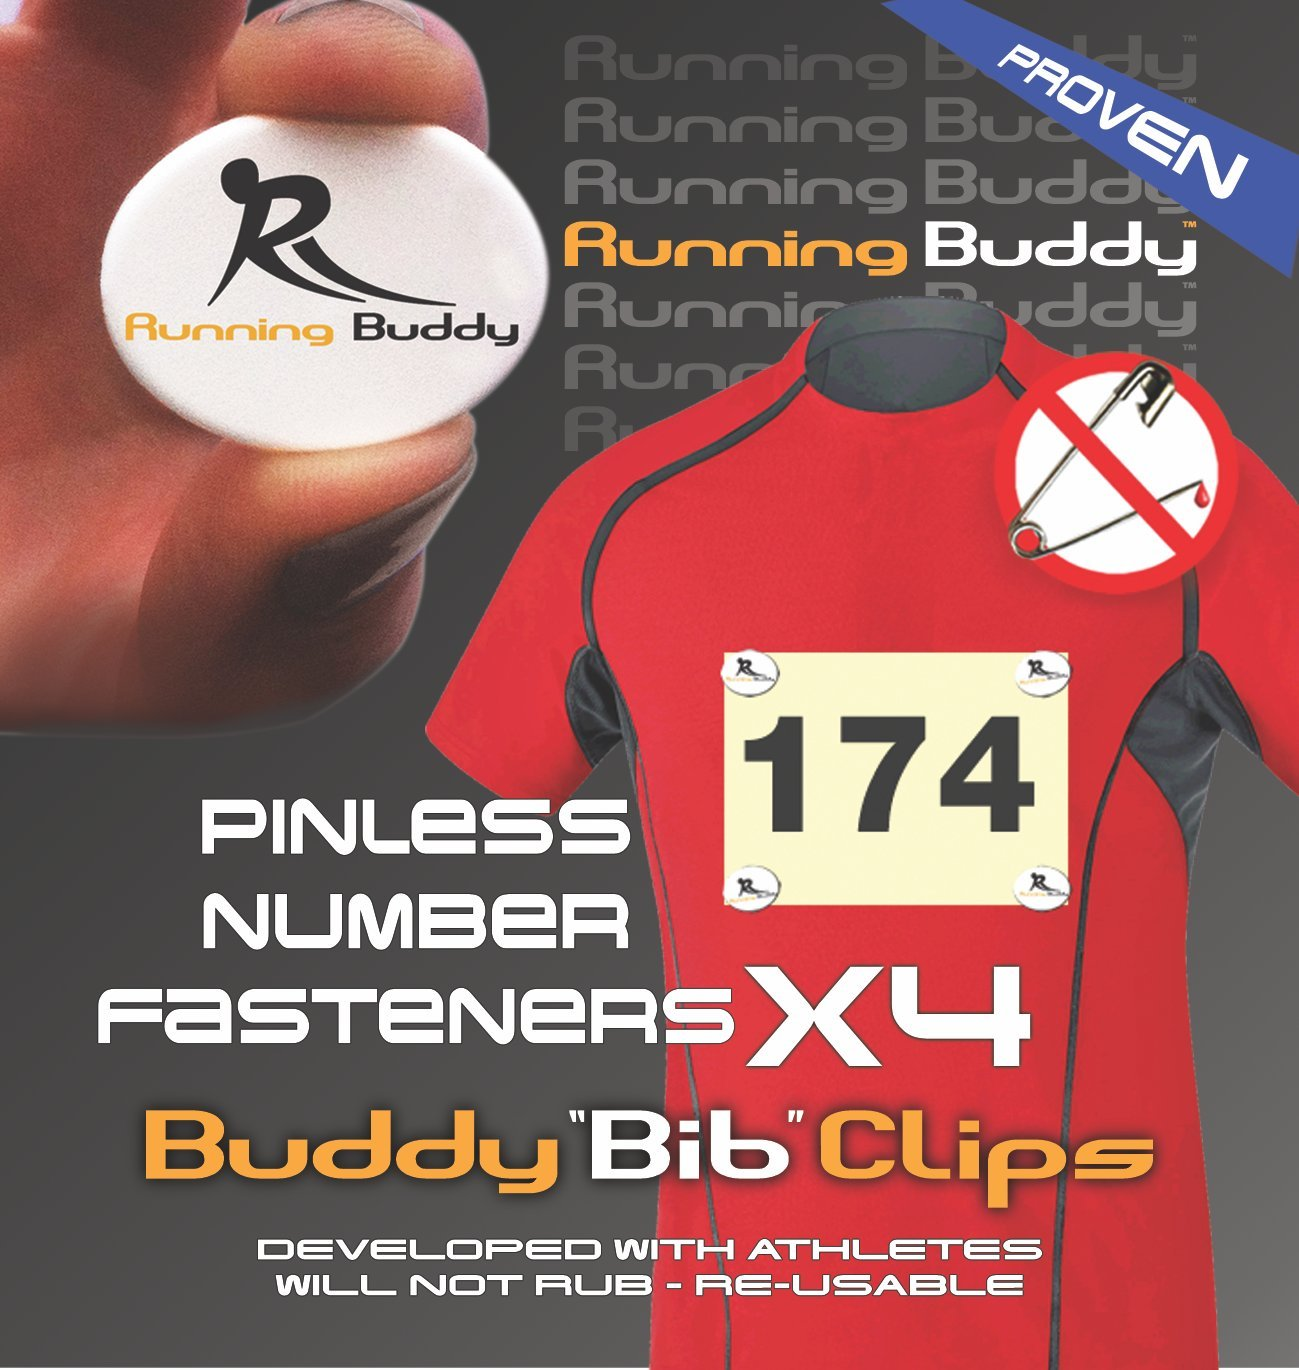 Running Buddy Highly Rated Buddy Bib Clips No Pins or Holes.Simply Snap Lock Runners Triathletes and Cyclists. No More Safety pins in Your Race Bibs